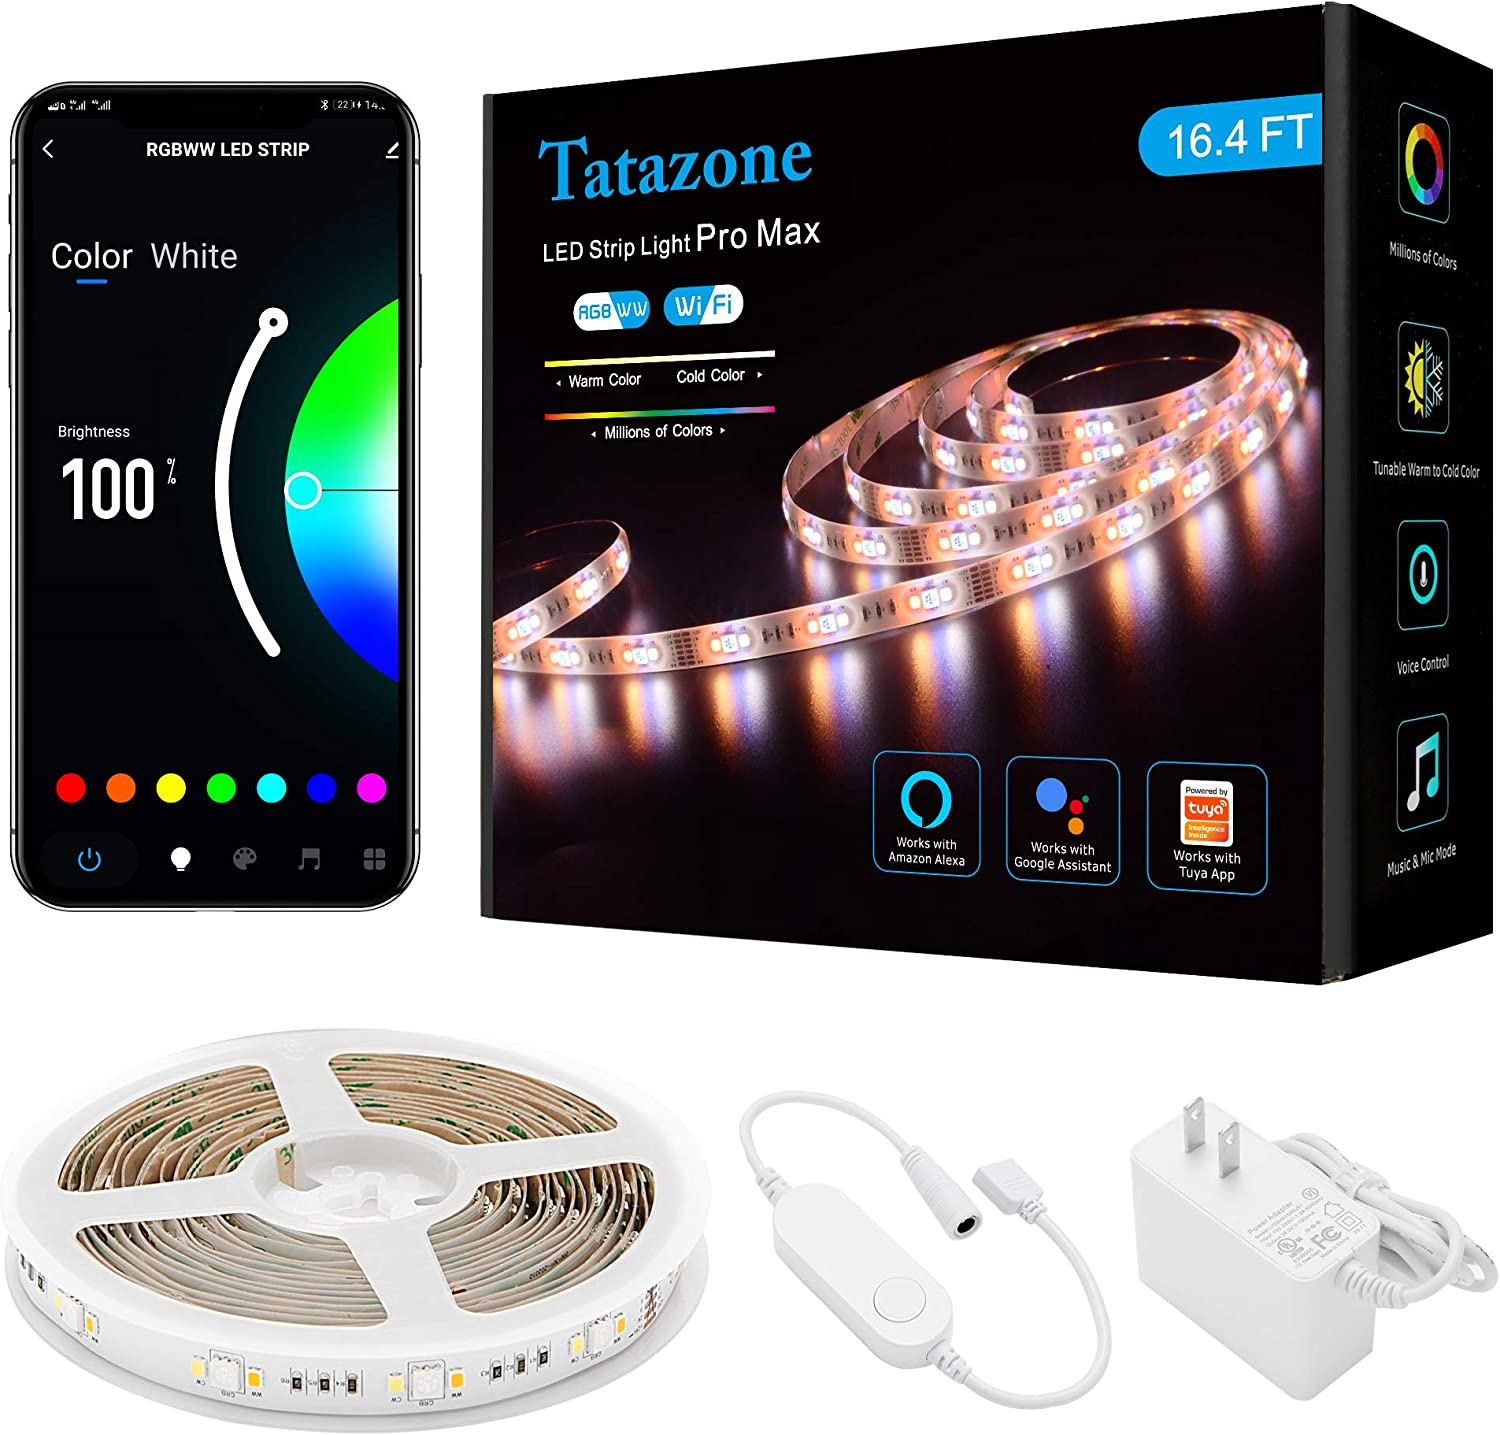 Tatazone 16.4FT RGBWW WiFi Smart Led Strip Lights, 2700K-6500K Warm White Cool White Led Light Strips with Alexa Google, Music Sync Color Changing Led Lights for Mirror, Bedroom, Kitchen, Ceiling, TV